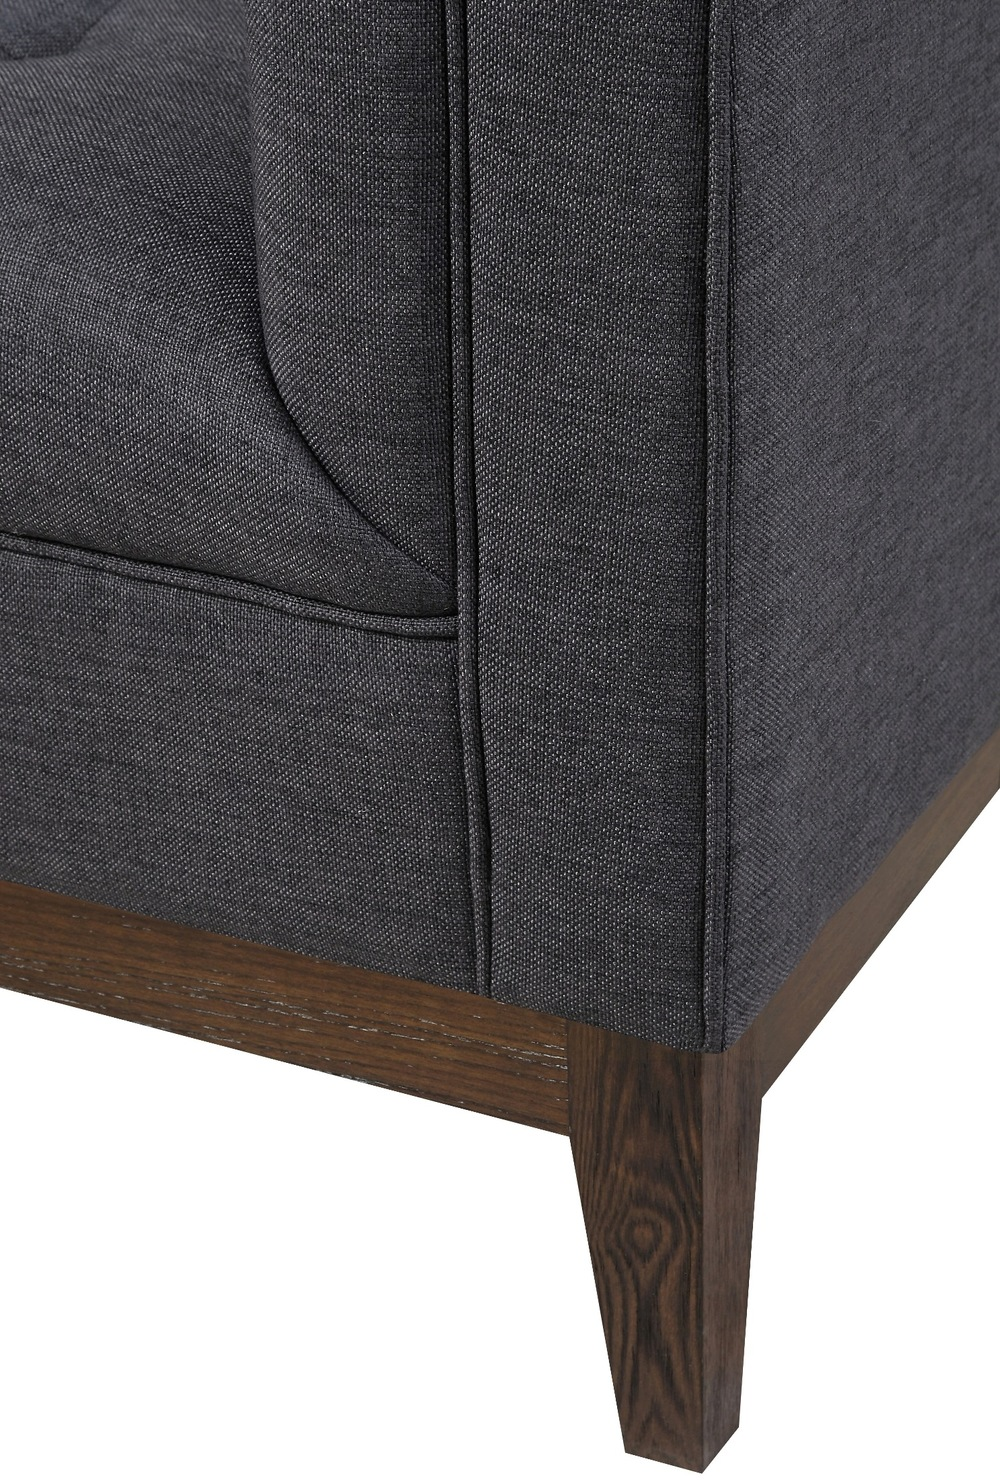 TOV Furniture - Gavin Grey Linen Chair